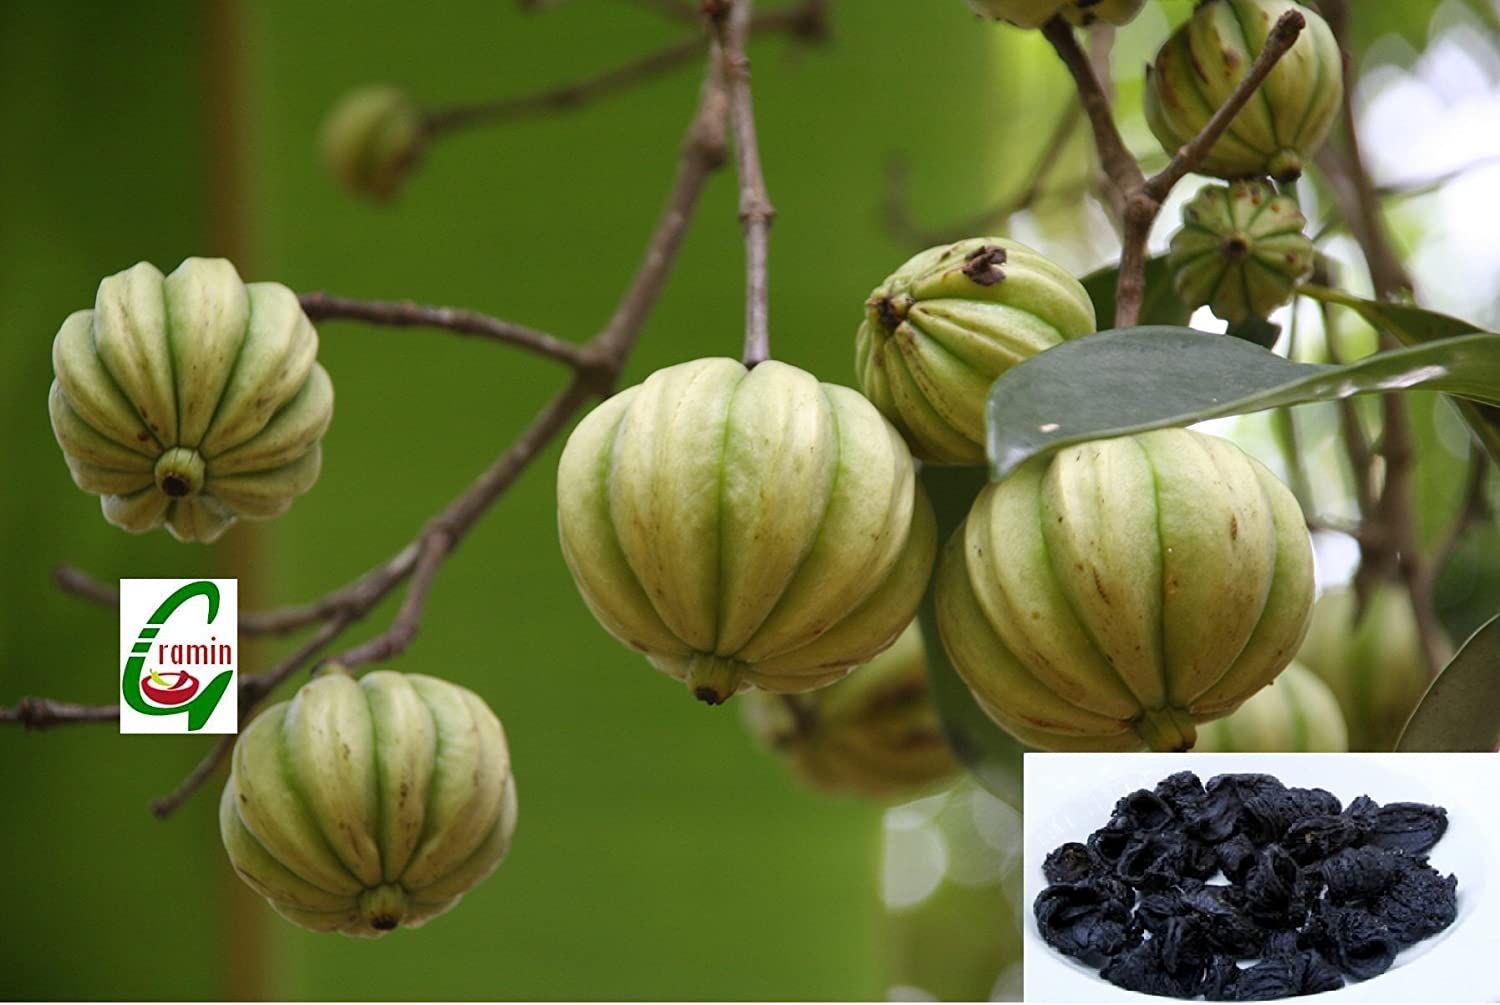 Seed Stores 10 Seeds Of Garcinia Cambogia Or Gummi Gutta Tree For Growing Amazon In Garden Outdoors